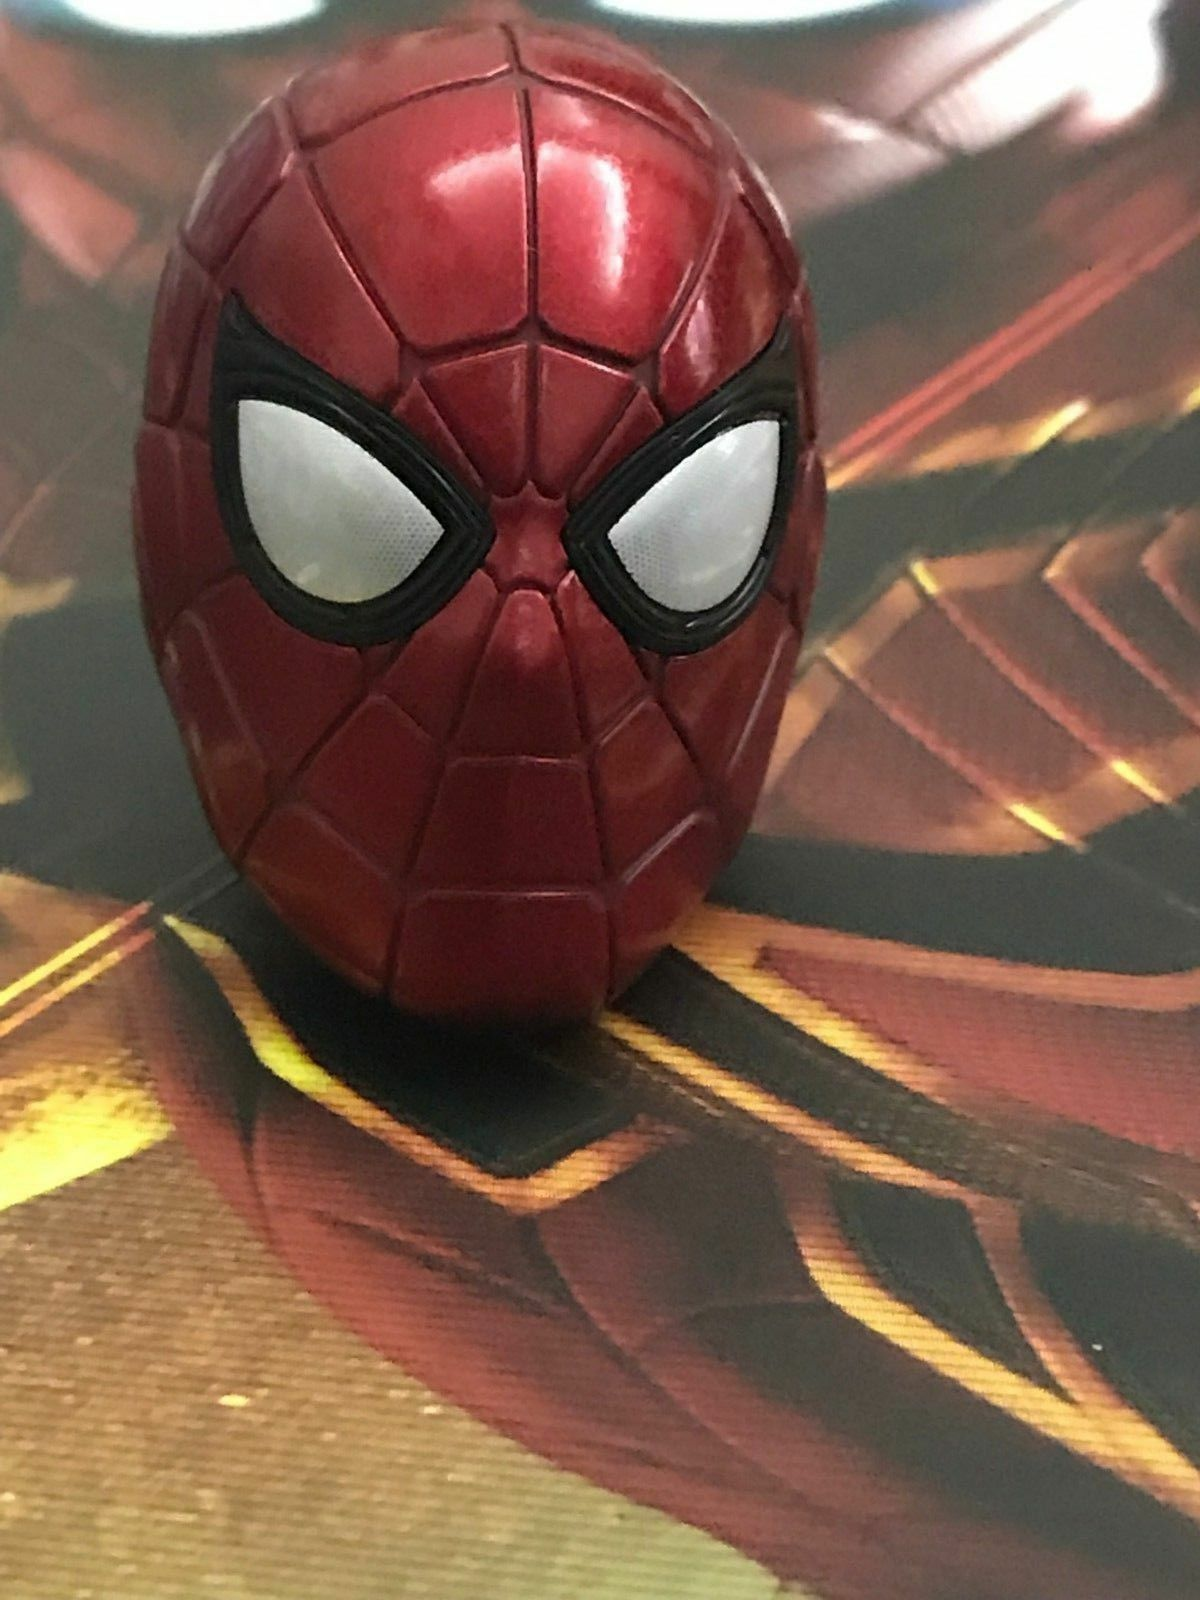 Iron Spider Hot Hot Hot Toys Head Avengers 3 Spider-Man IronSpider 1 6 Mask Infinity War 1298ae